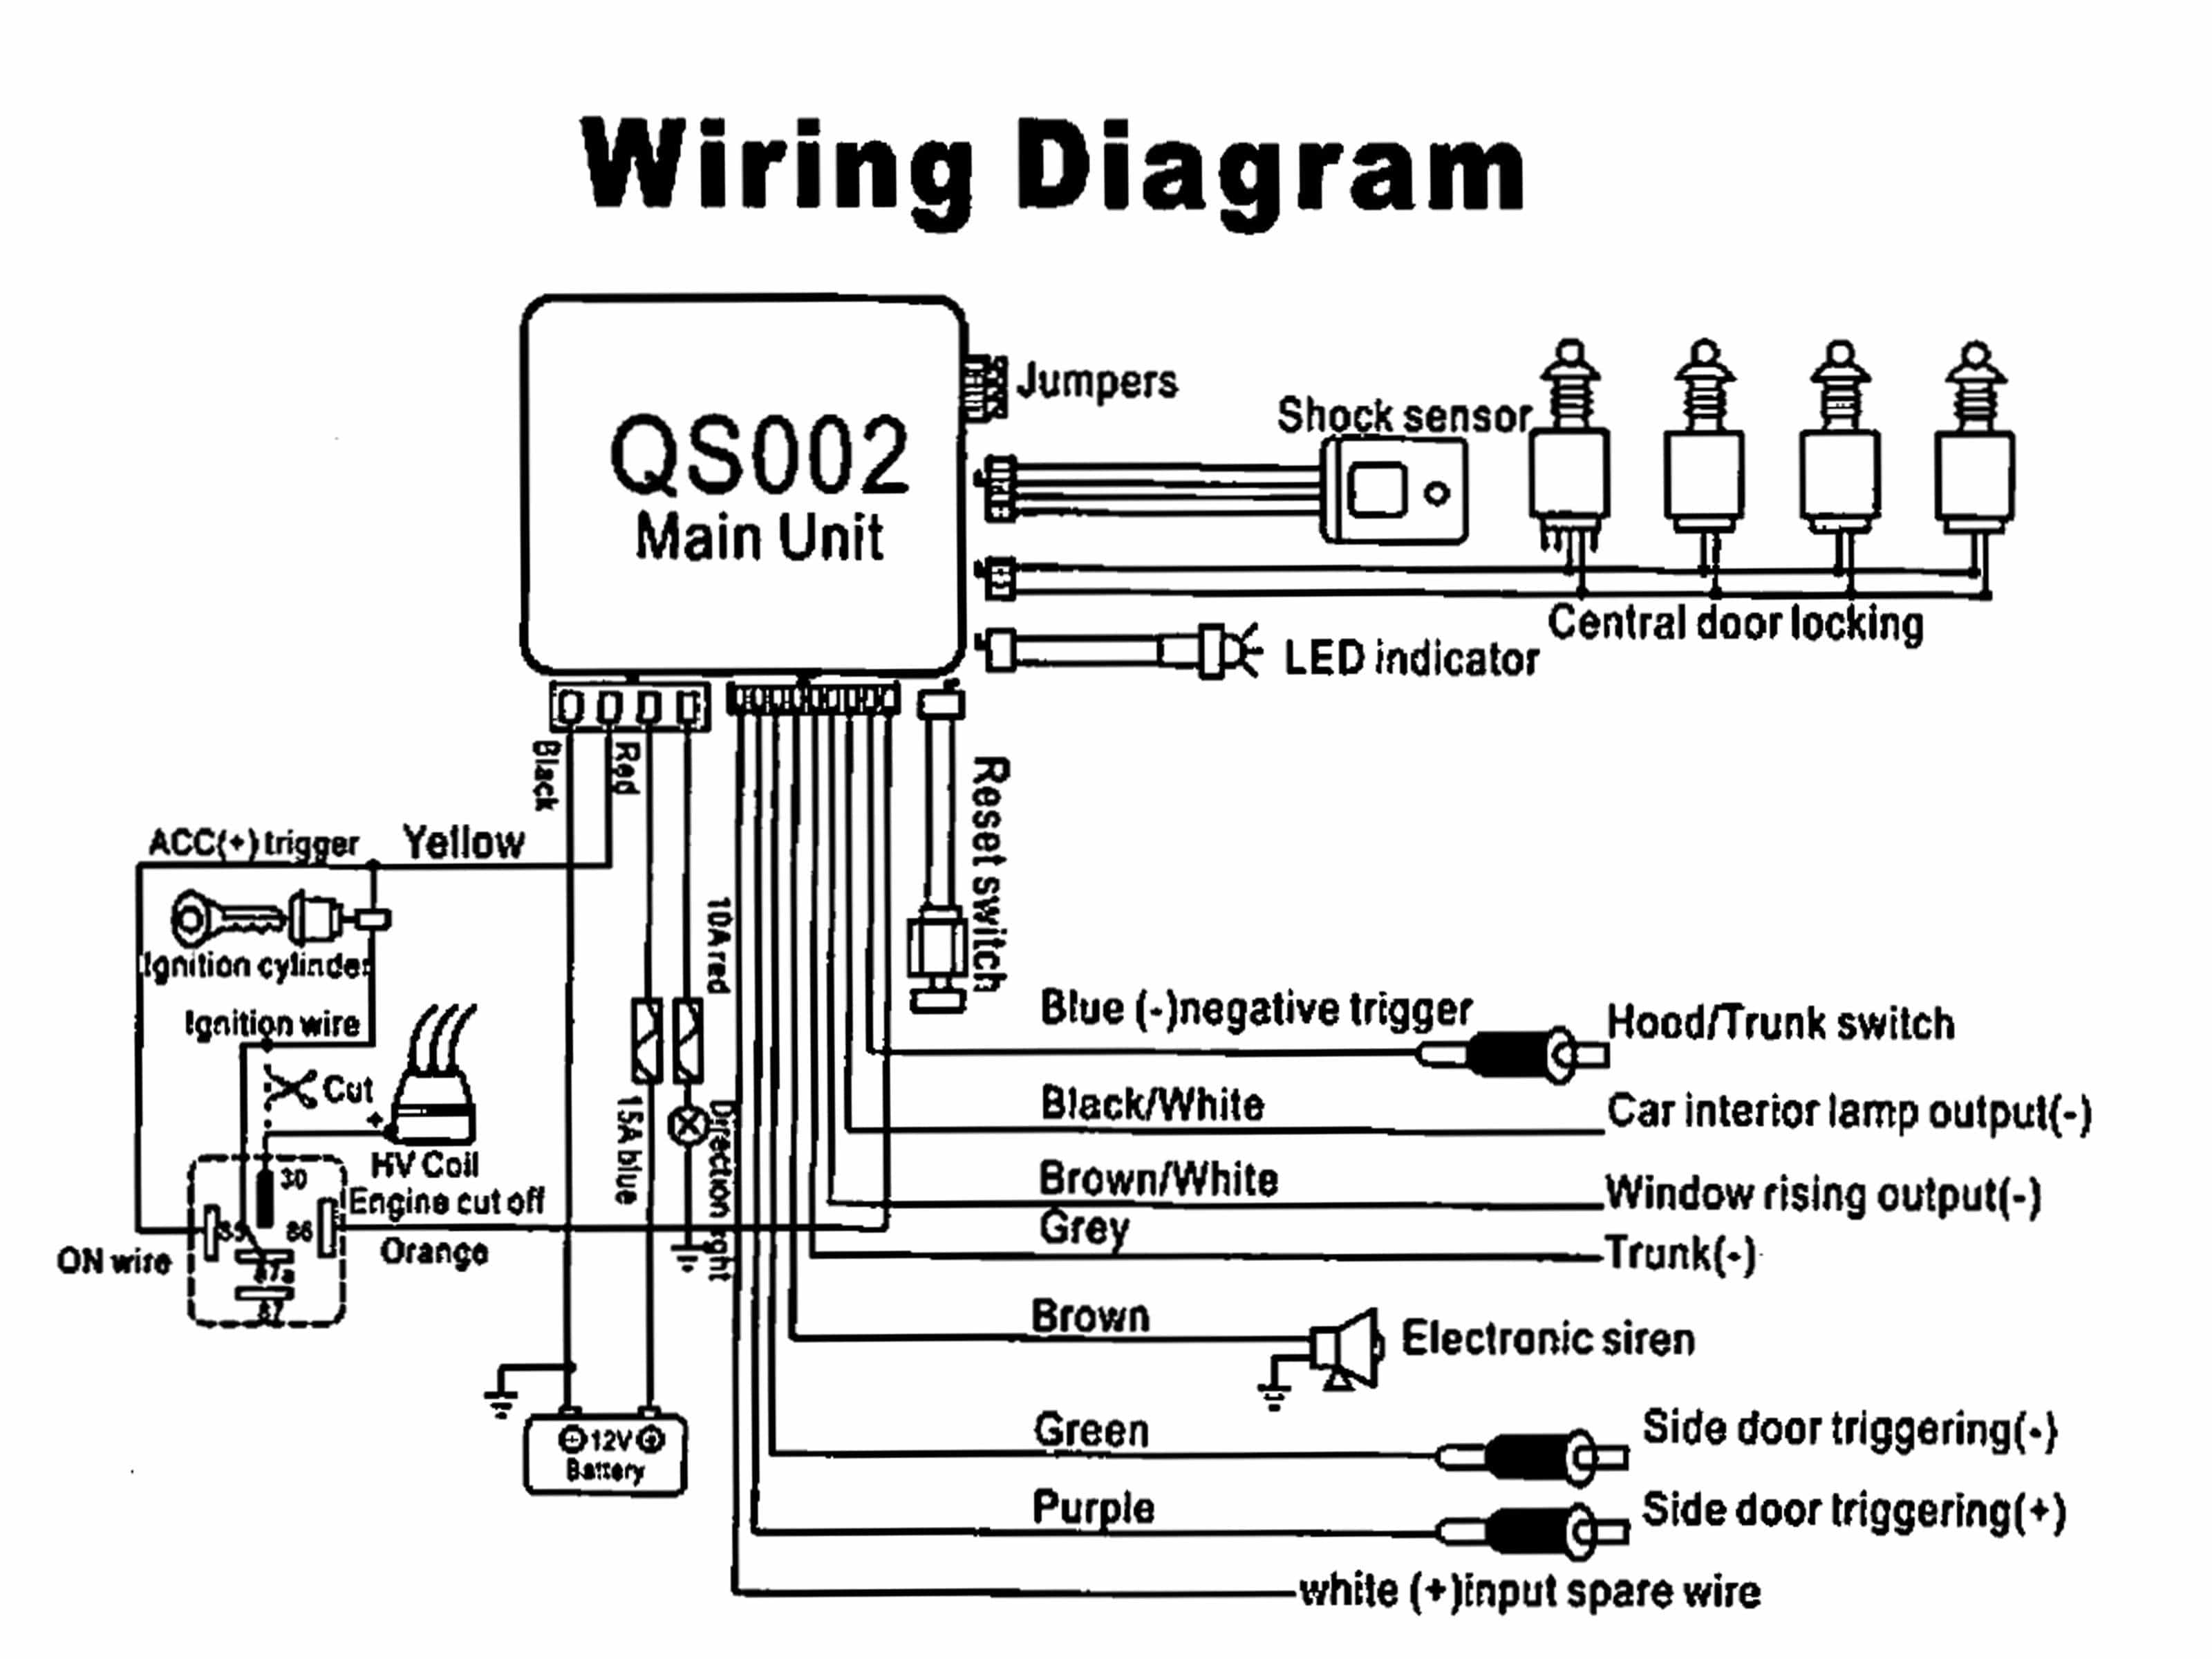 AlarmInstructions_7a98a2bc d189 4c5b 99b3 c774abdbef28 clarion cmd5 wiring diagram wiring diagram shrutiradio  at virtualis.co